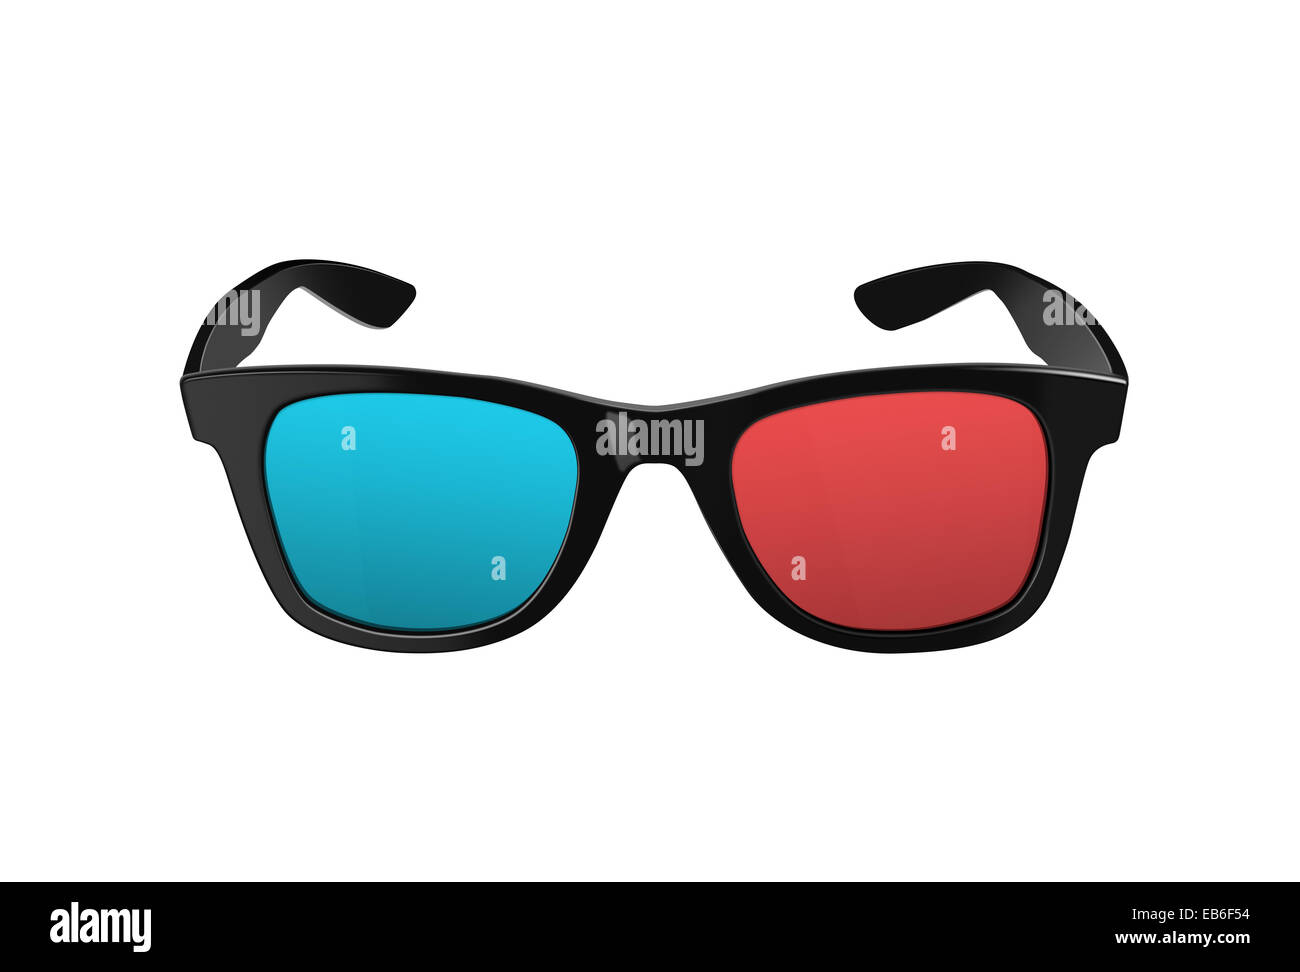 Black 3D glasses, for three dimensional movies or films, with plastic rims and red and blues lenses, both modern - Stock Image